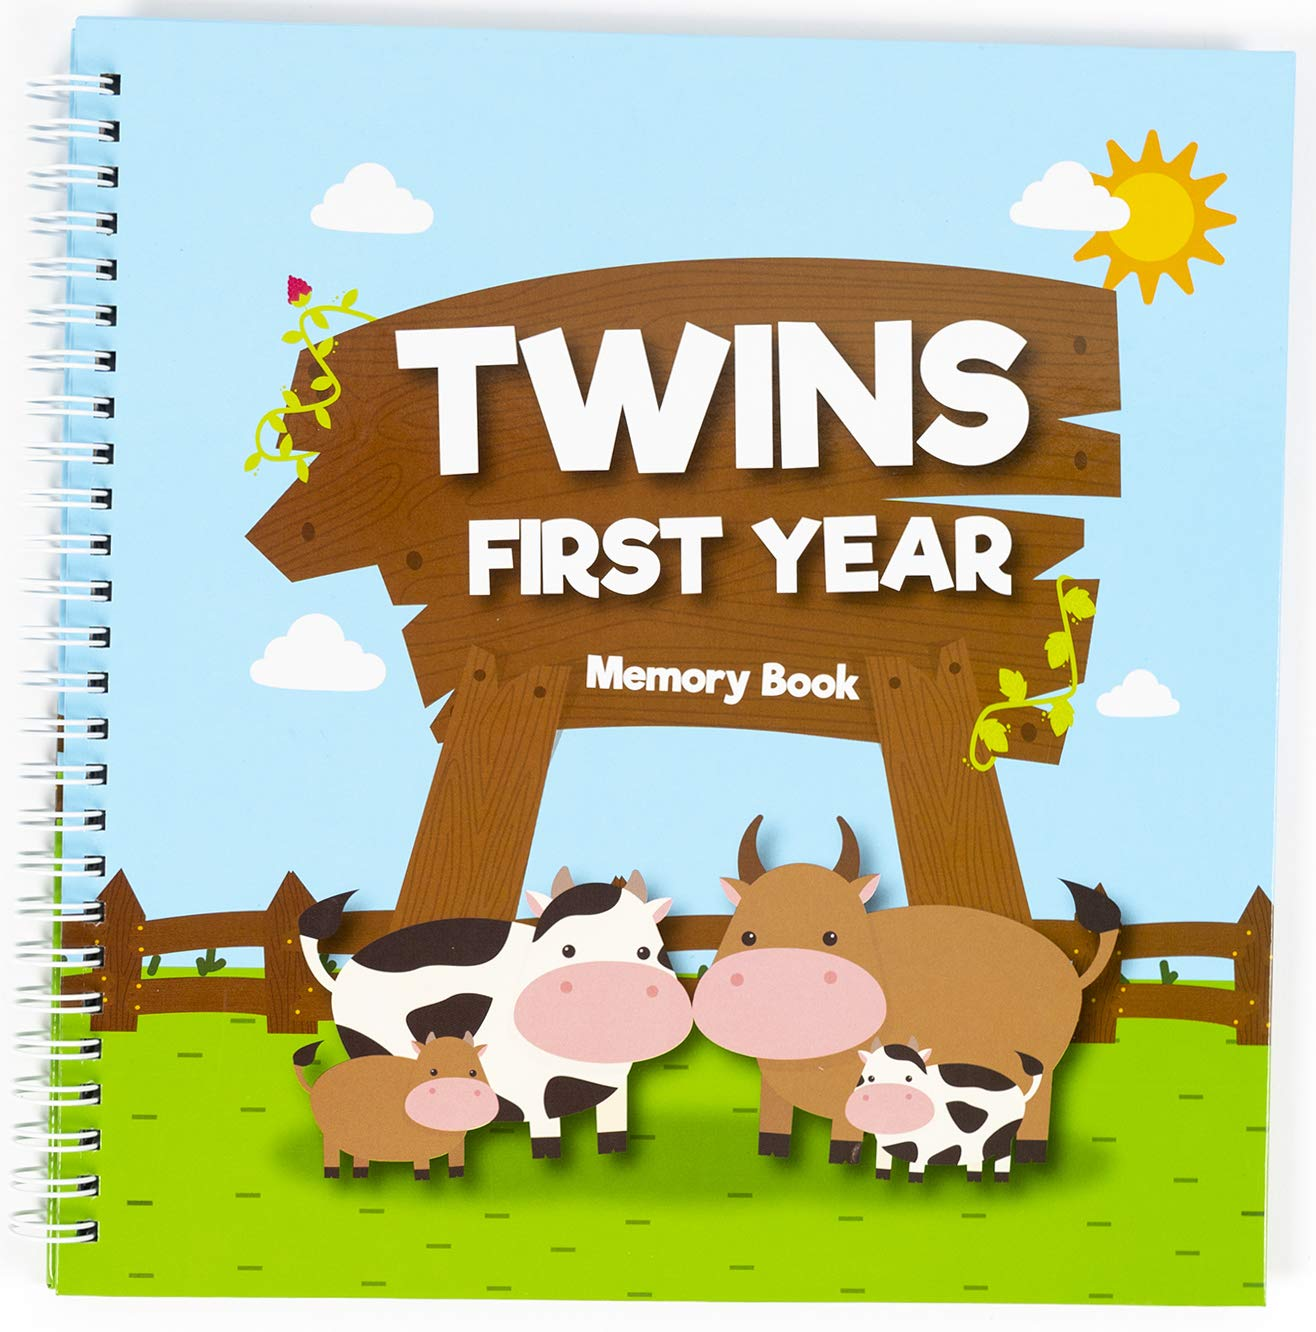 Great Newborn Twins by Unconditional Rosie - A Beautiful Baby Memory Book for Documenting Your Twin Baby's First Year - Perfect Gift for Moms Having 2 Babies. Gorgeous Baby Twin Gifts - Cows Edition.